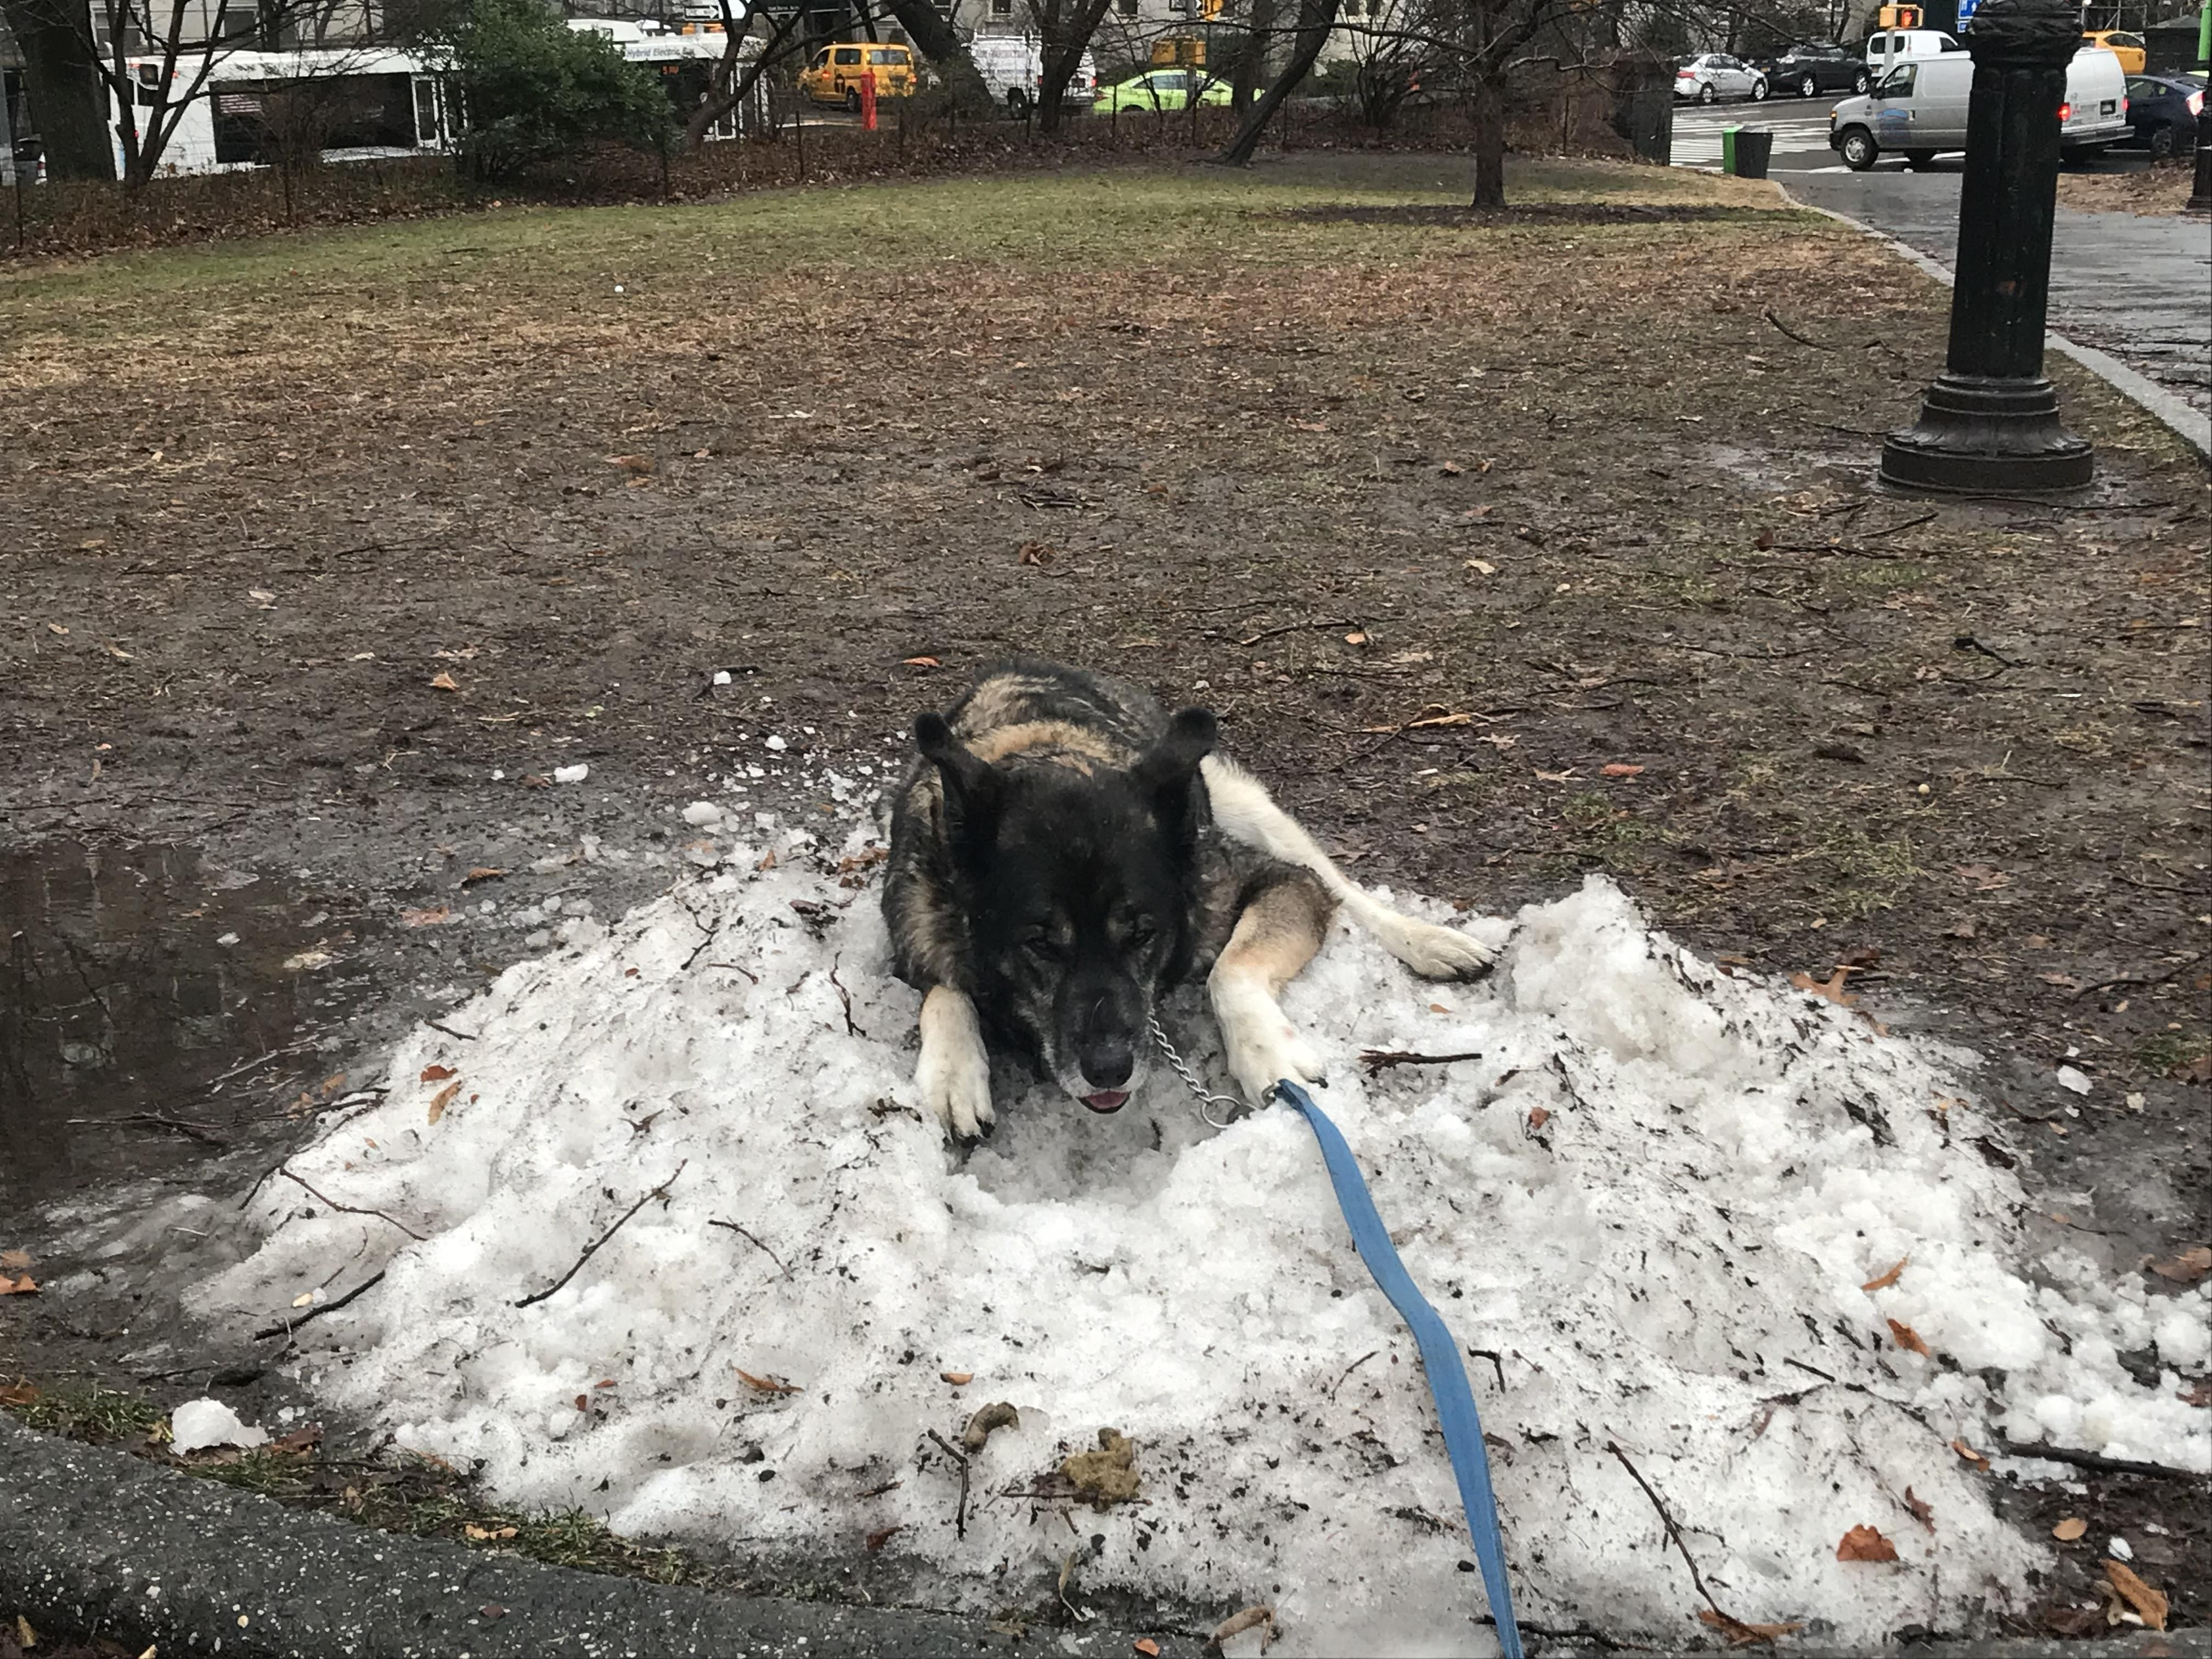 You could say my dog misses the snow